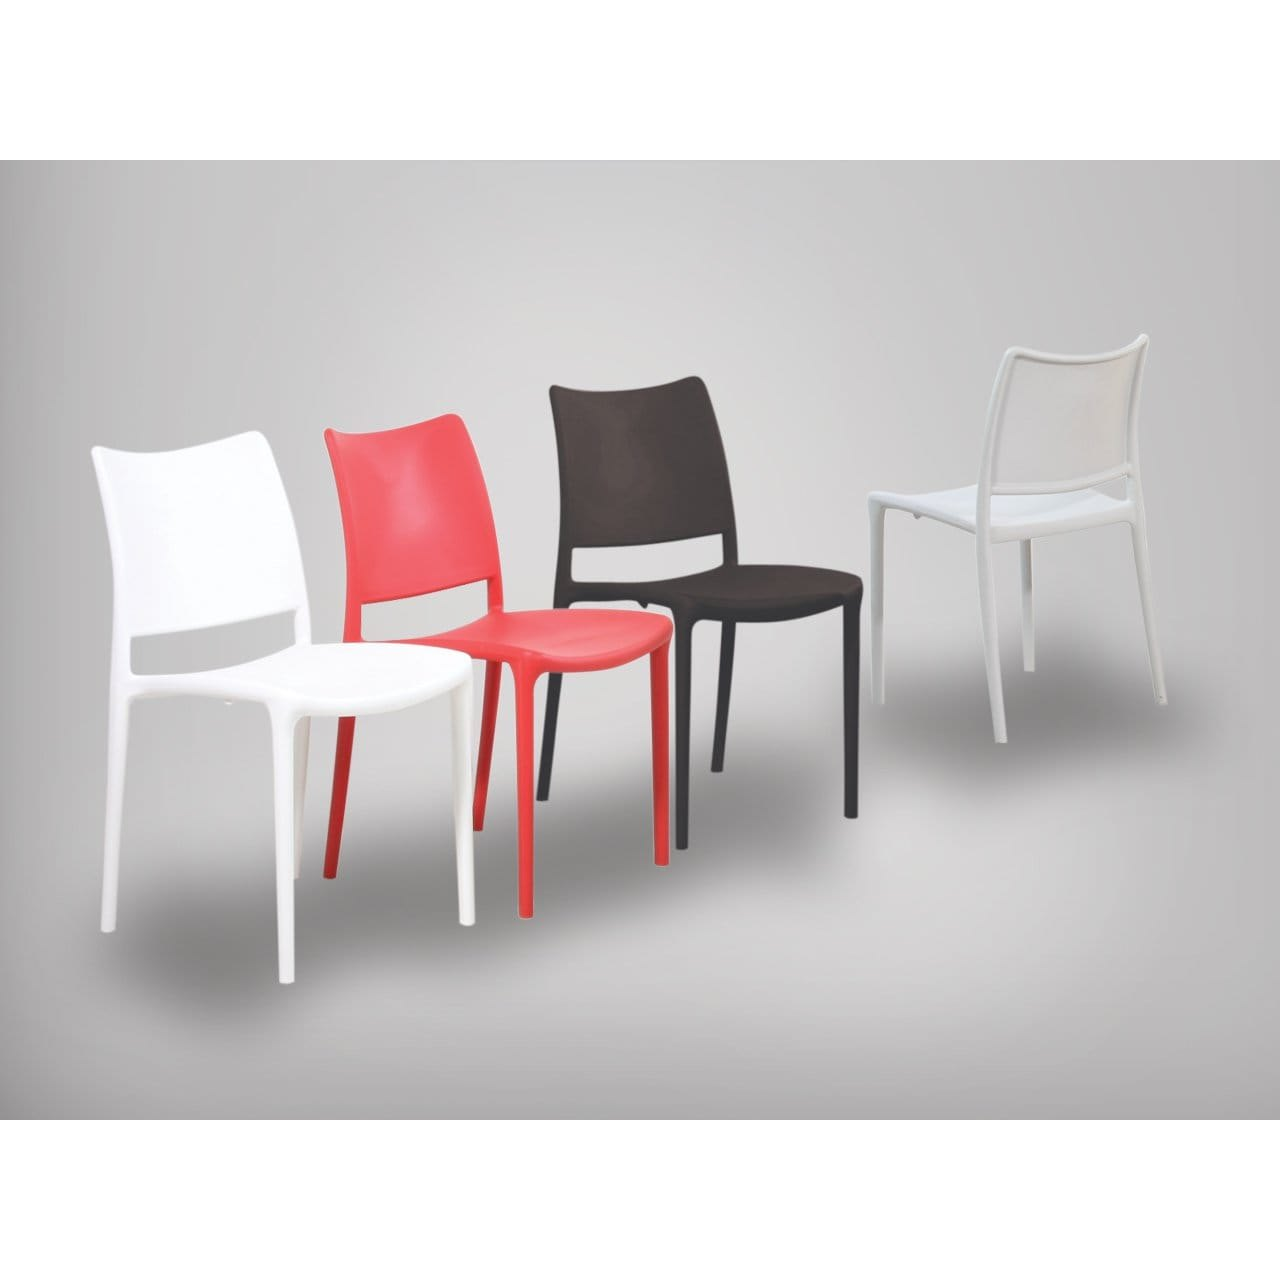 Kobe Side Chair | Comfort Design - The Chair & Table People